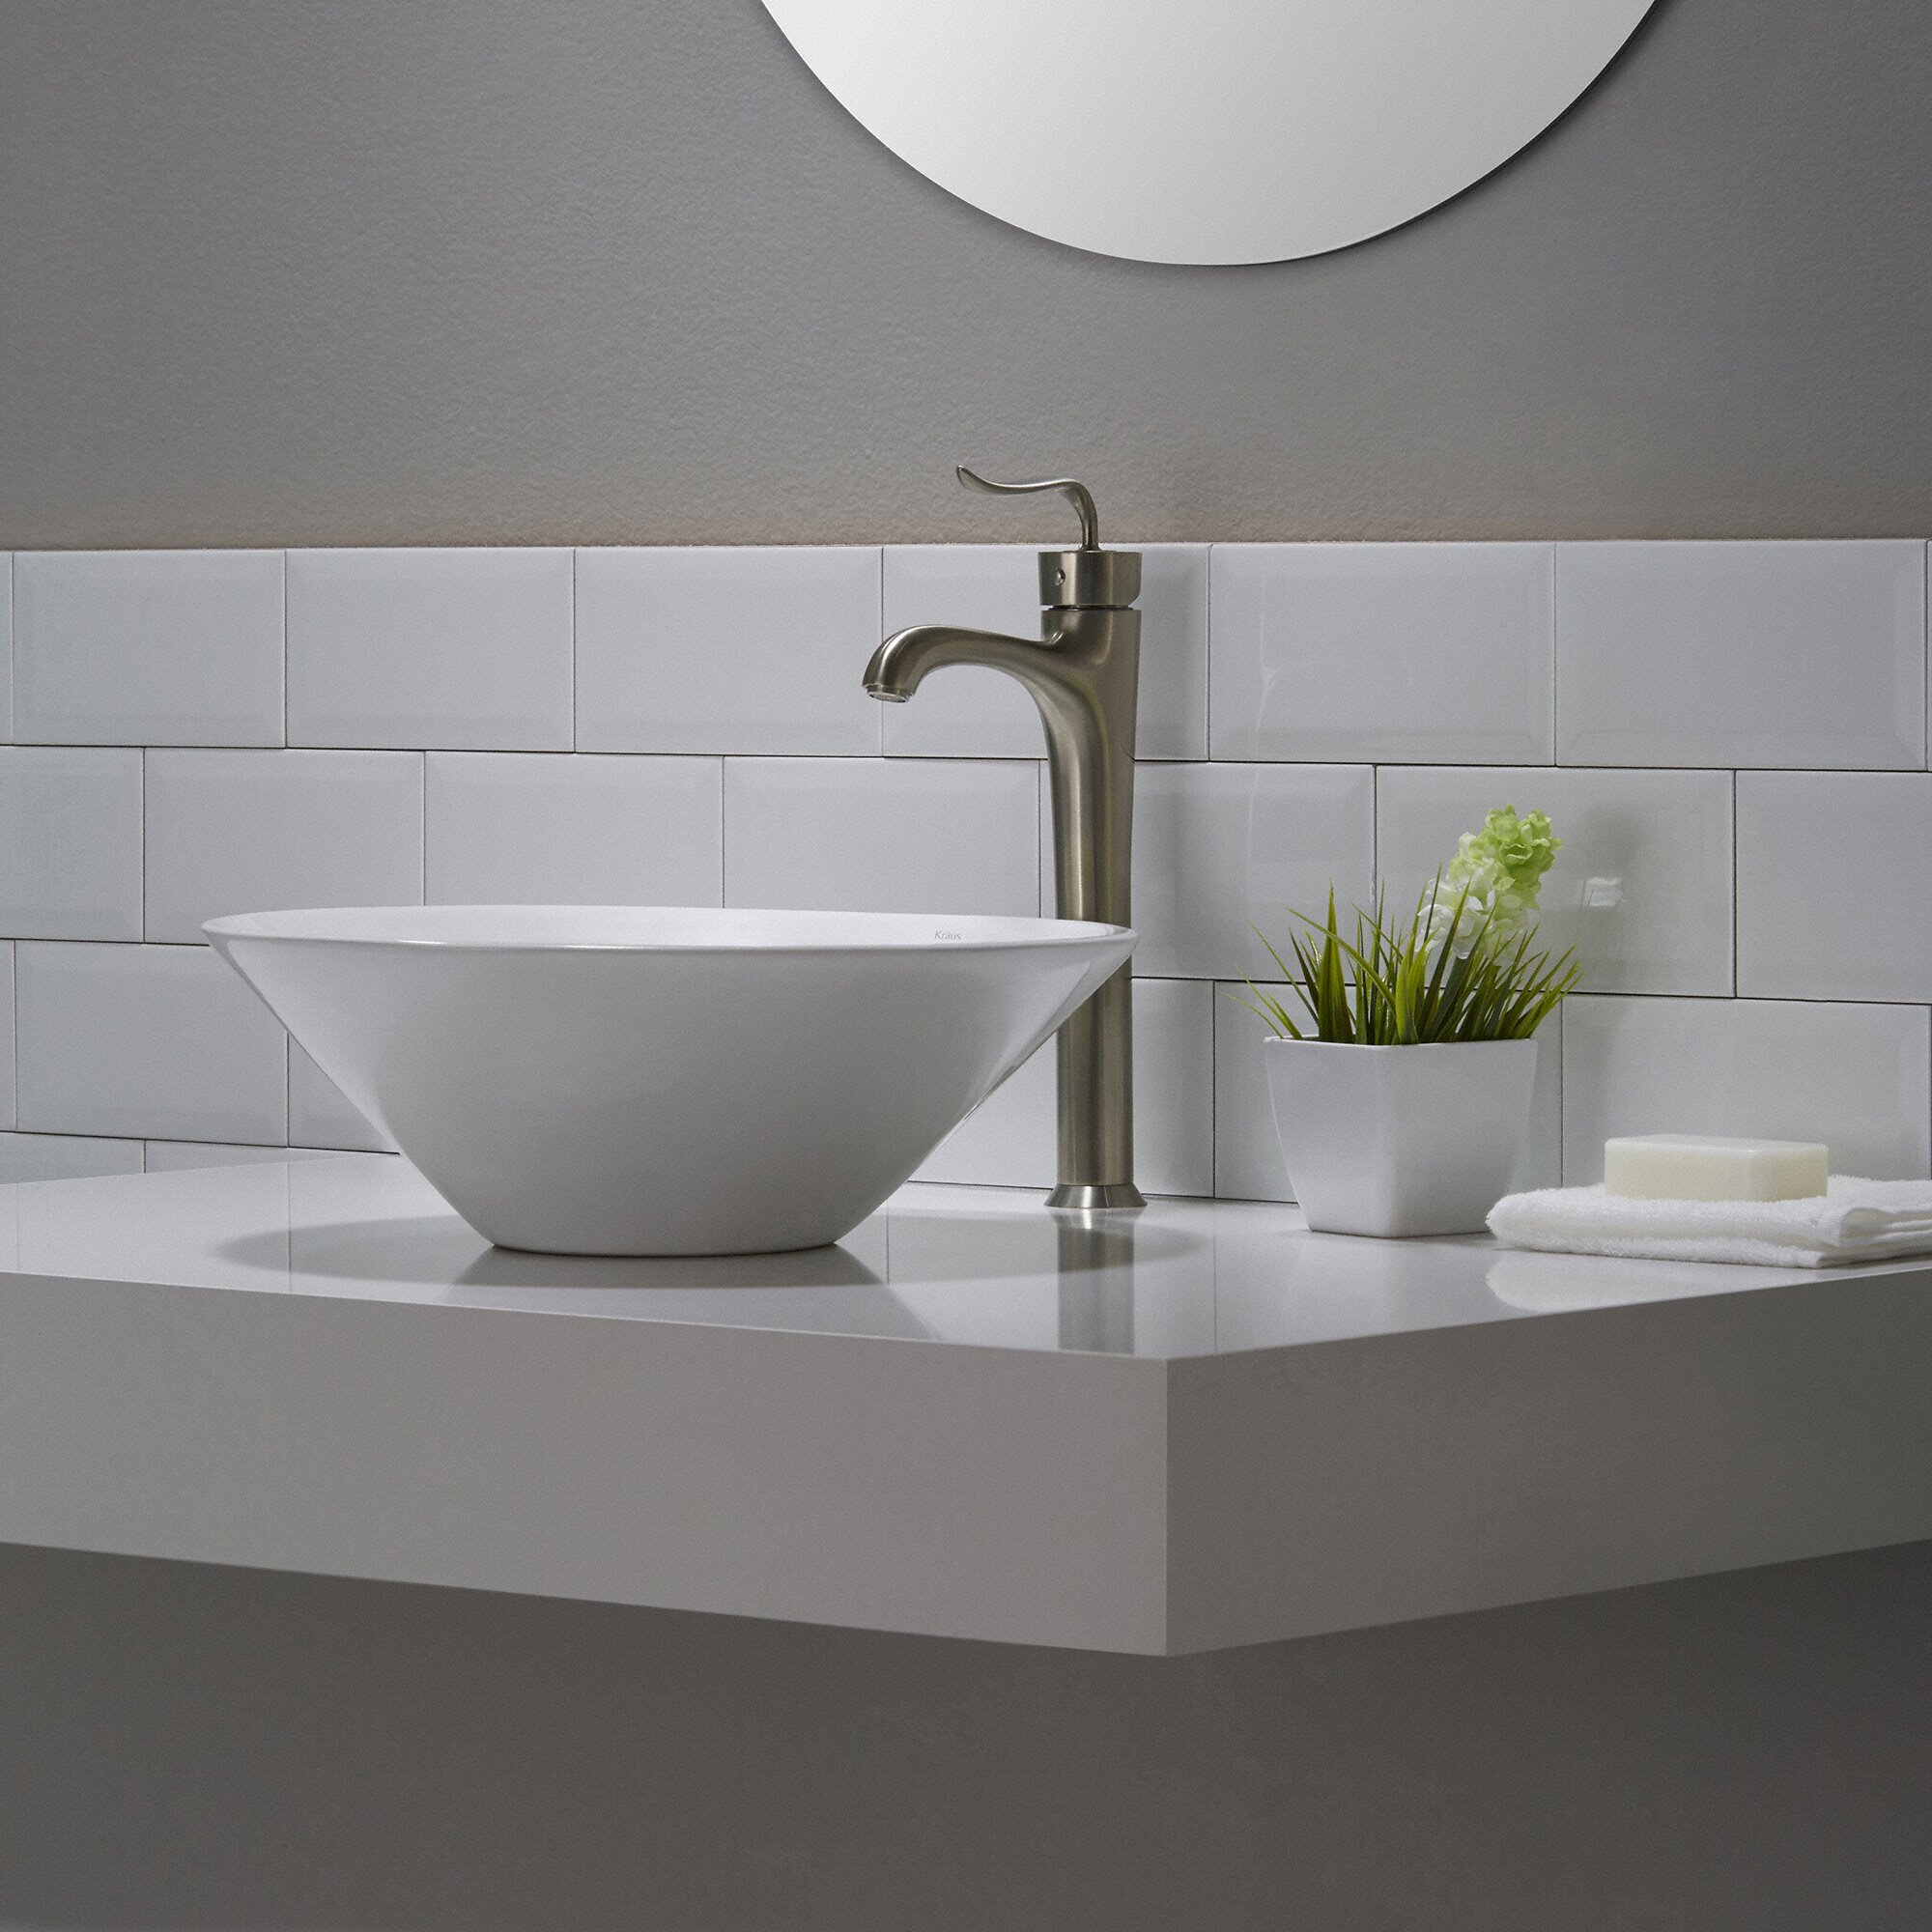 Elavo circular vessel bathroom sink reviews allmodern for Are vessel sinks out of style